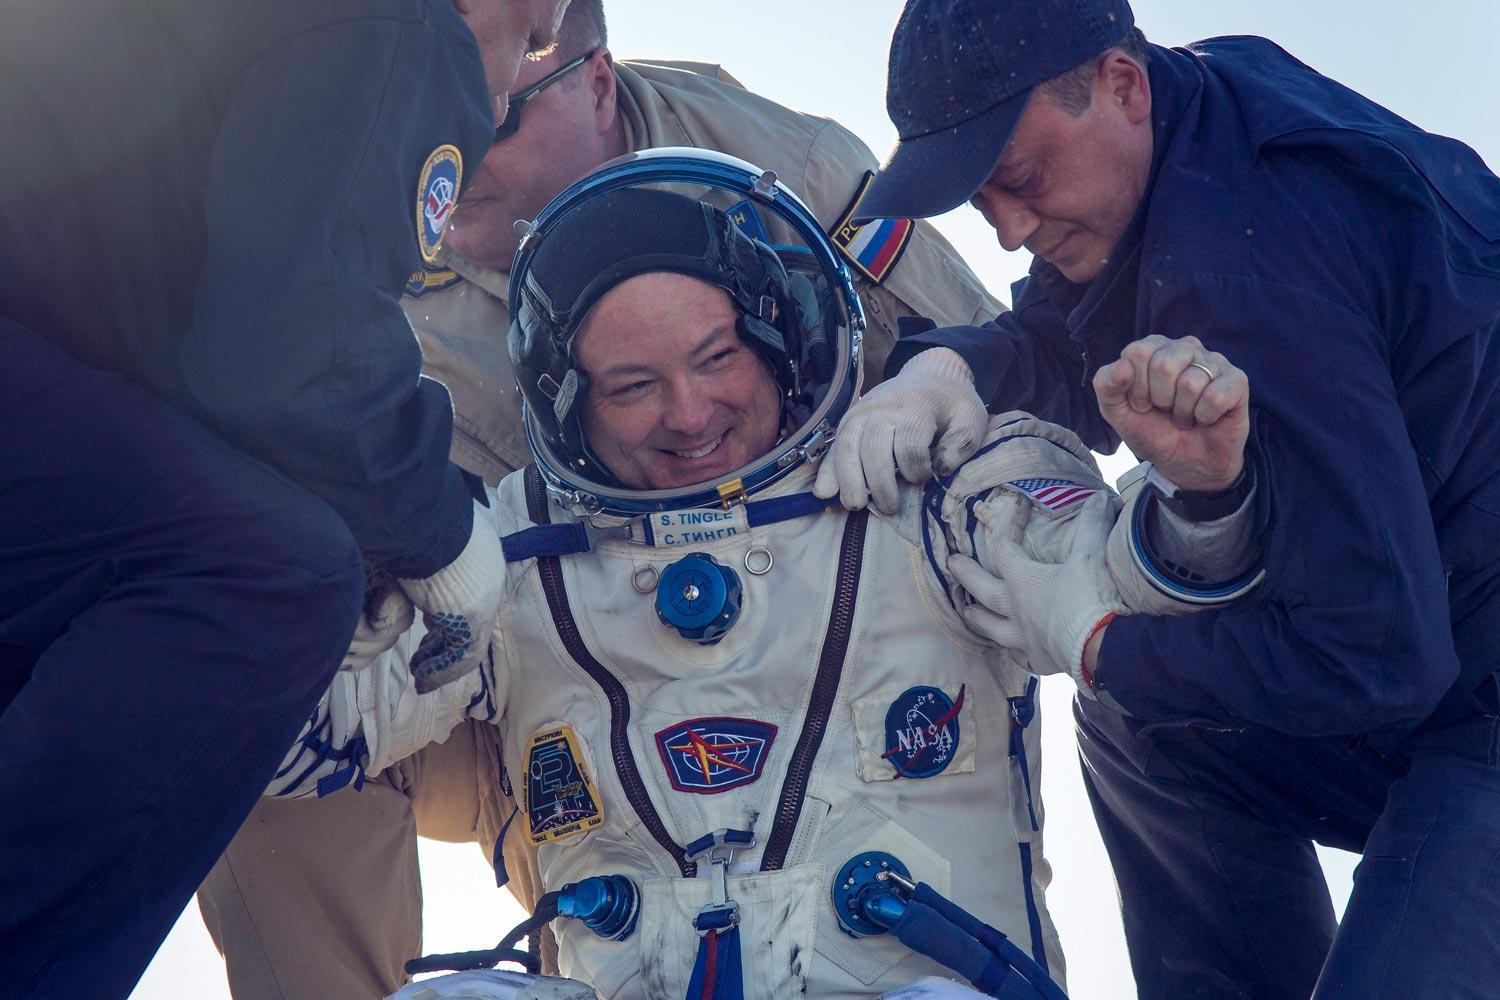 NASA astronaut Scott Tingle is helped out of the Soyuz MS-07 spacecraft just minutes after he and his fellow astronauts landed in a remote area of Kazakhstan on June 3.